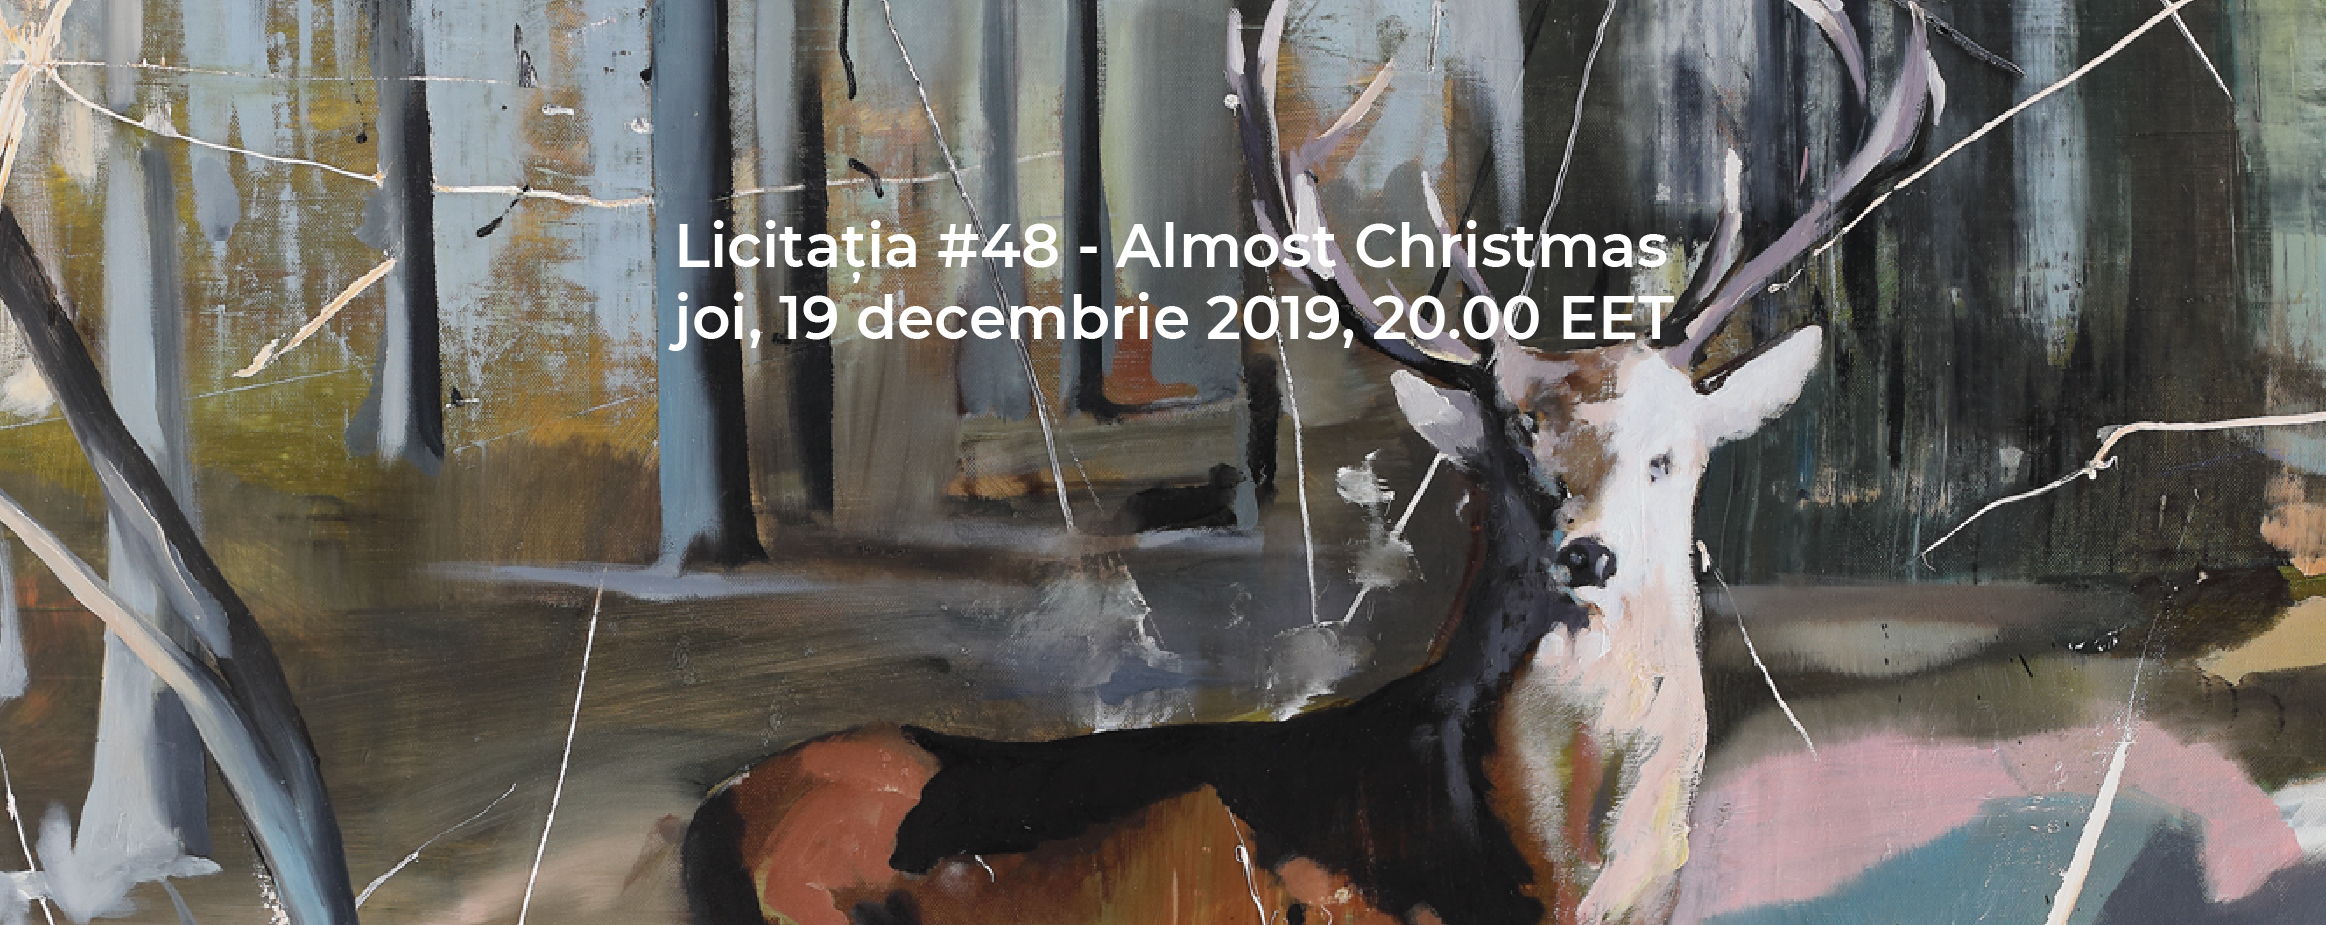 Lavacow #48 - Almost Christmas